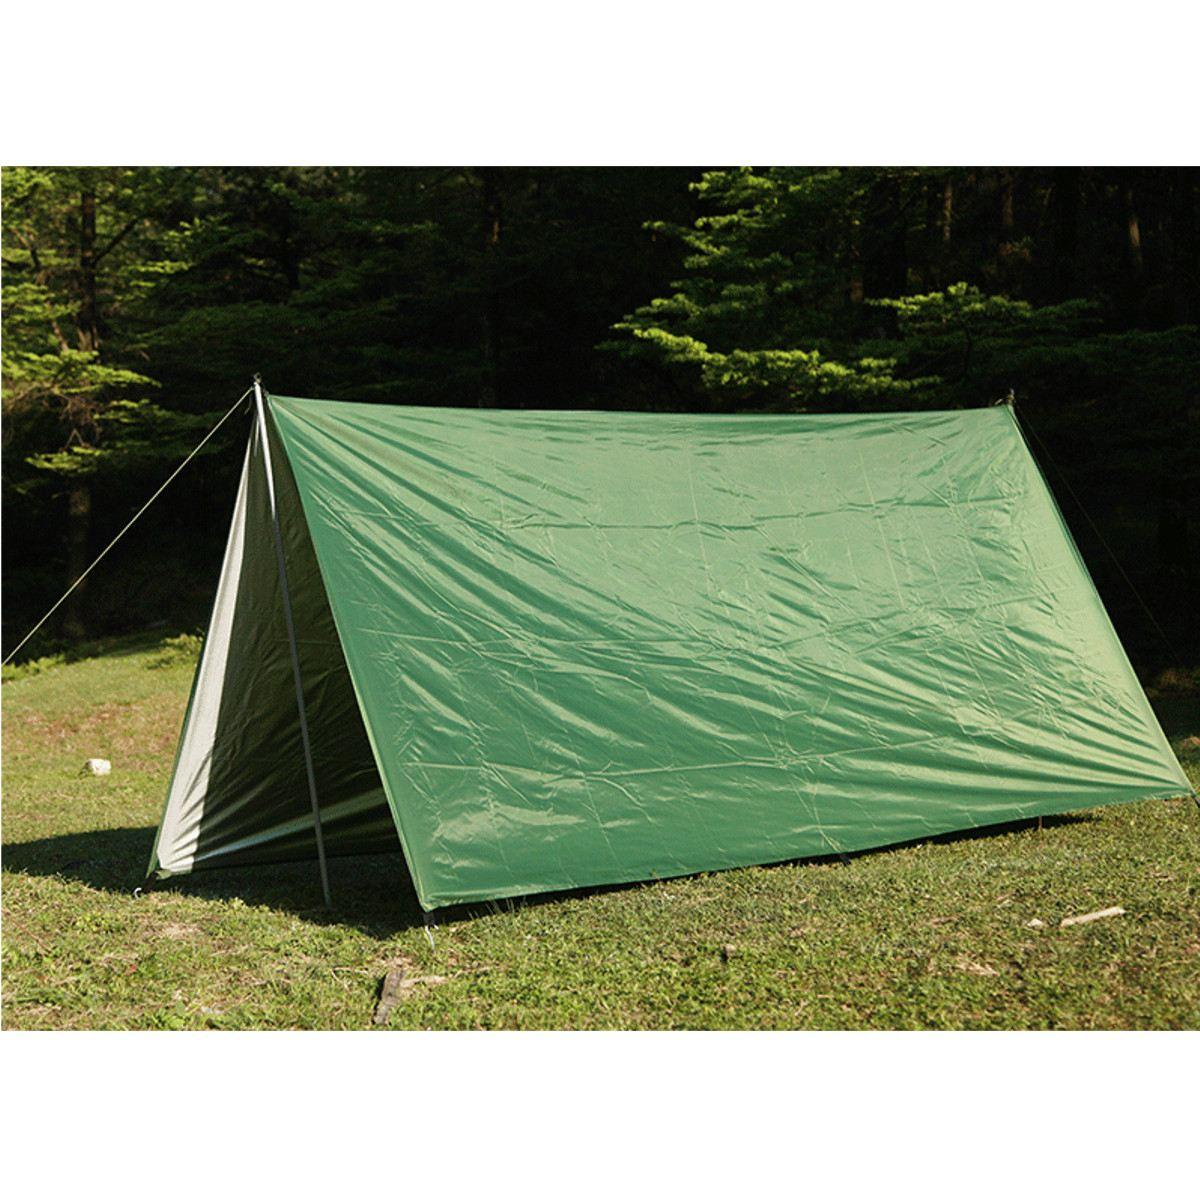 Wholesale- 3mx3m Waterproof Sun Shelter Tarp Survival C&ing Climbing Outdoor Tent Patio Top Sun Shade Awning Canopy Garden Tent Shade Shelter Tarp Sun ...  sc 1 st  DHgate.com & Wholesale- 3mx3m Waterproof Sun Shelter Tarp Survival Camping ...